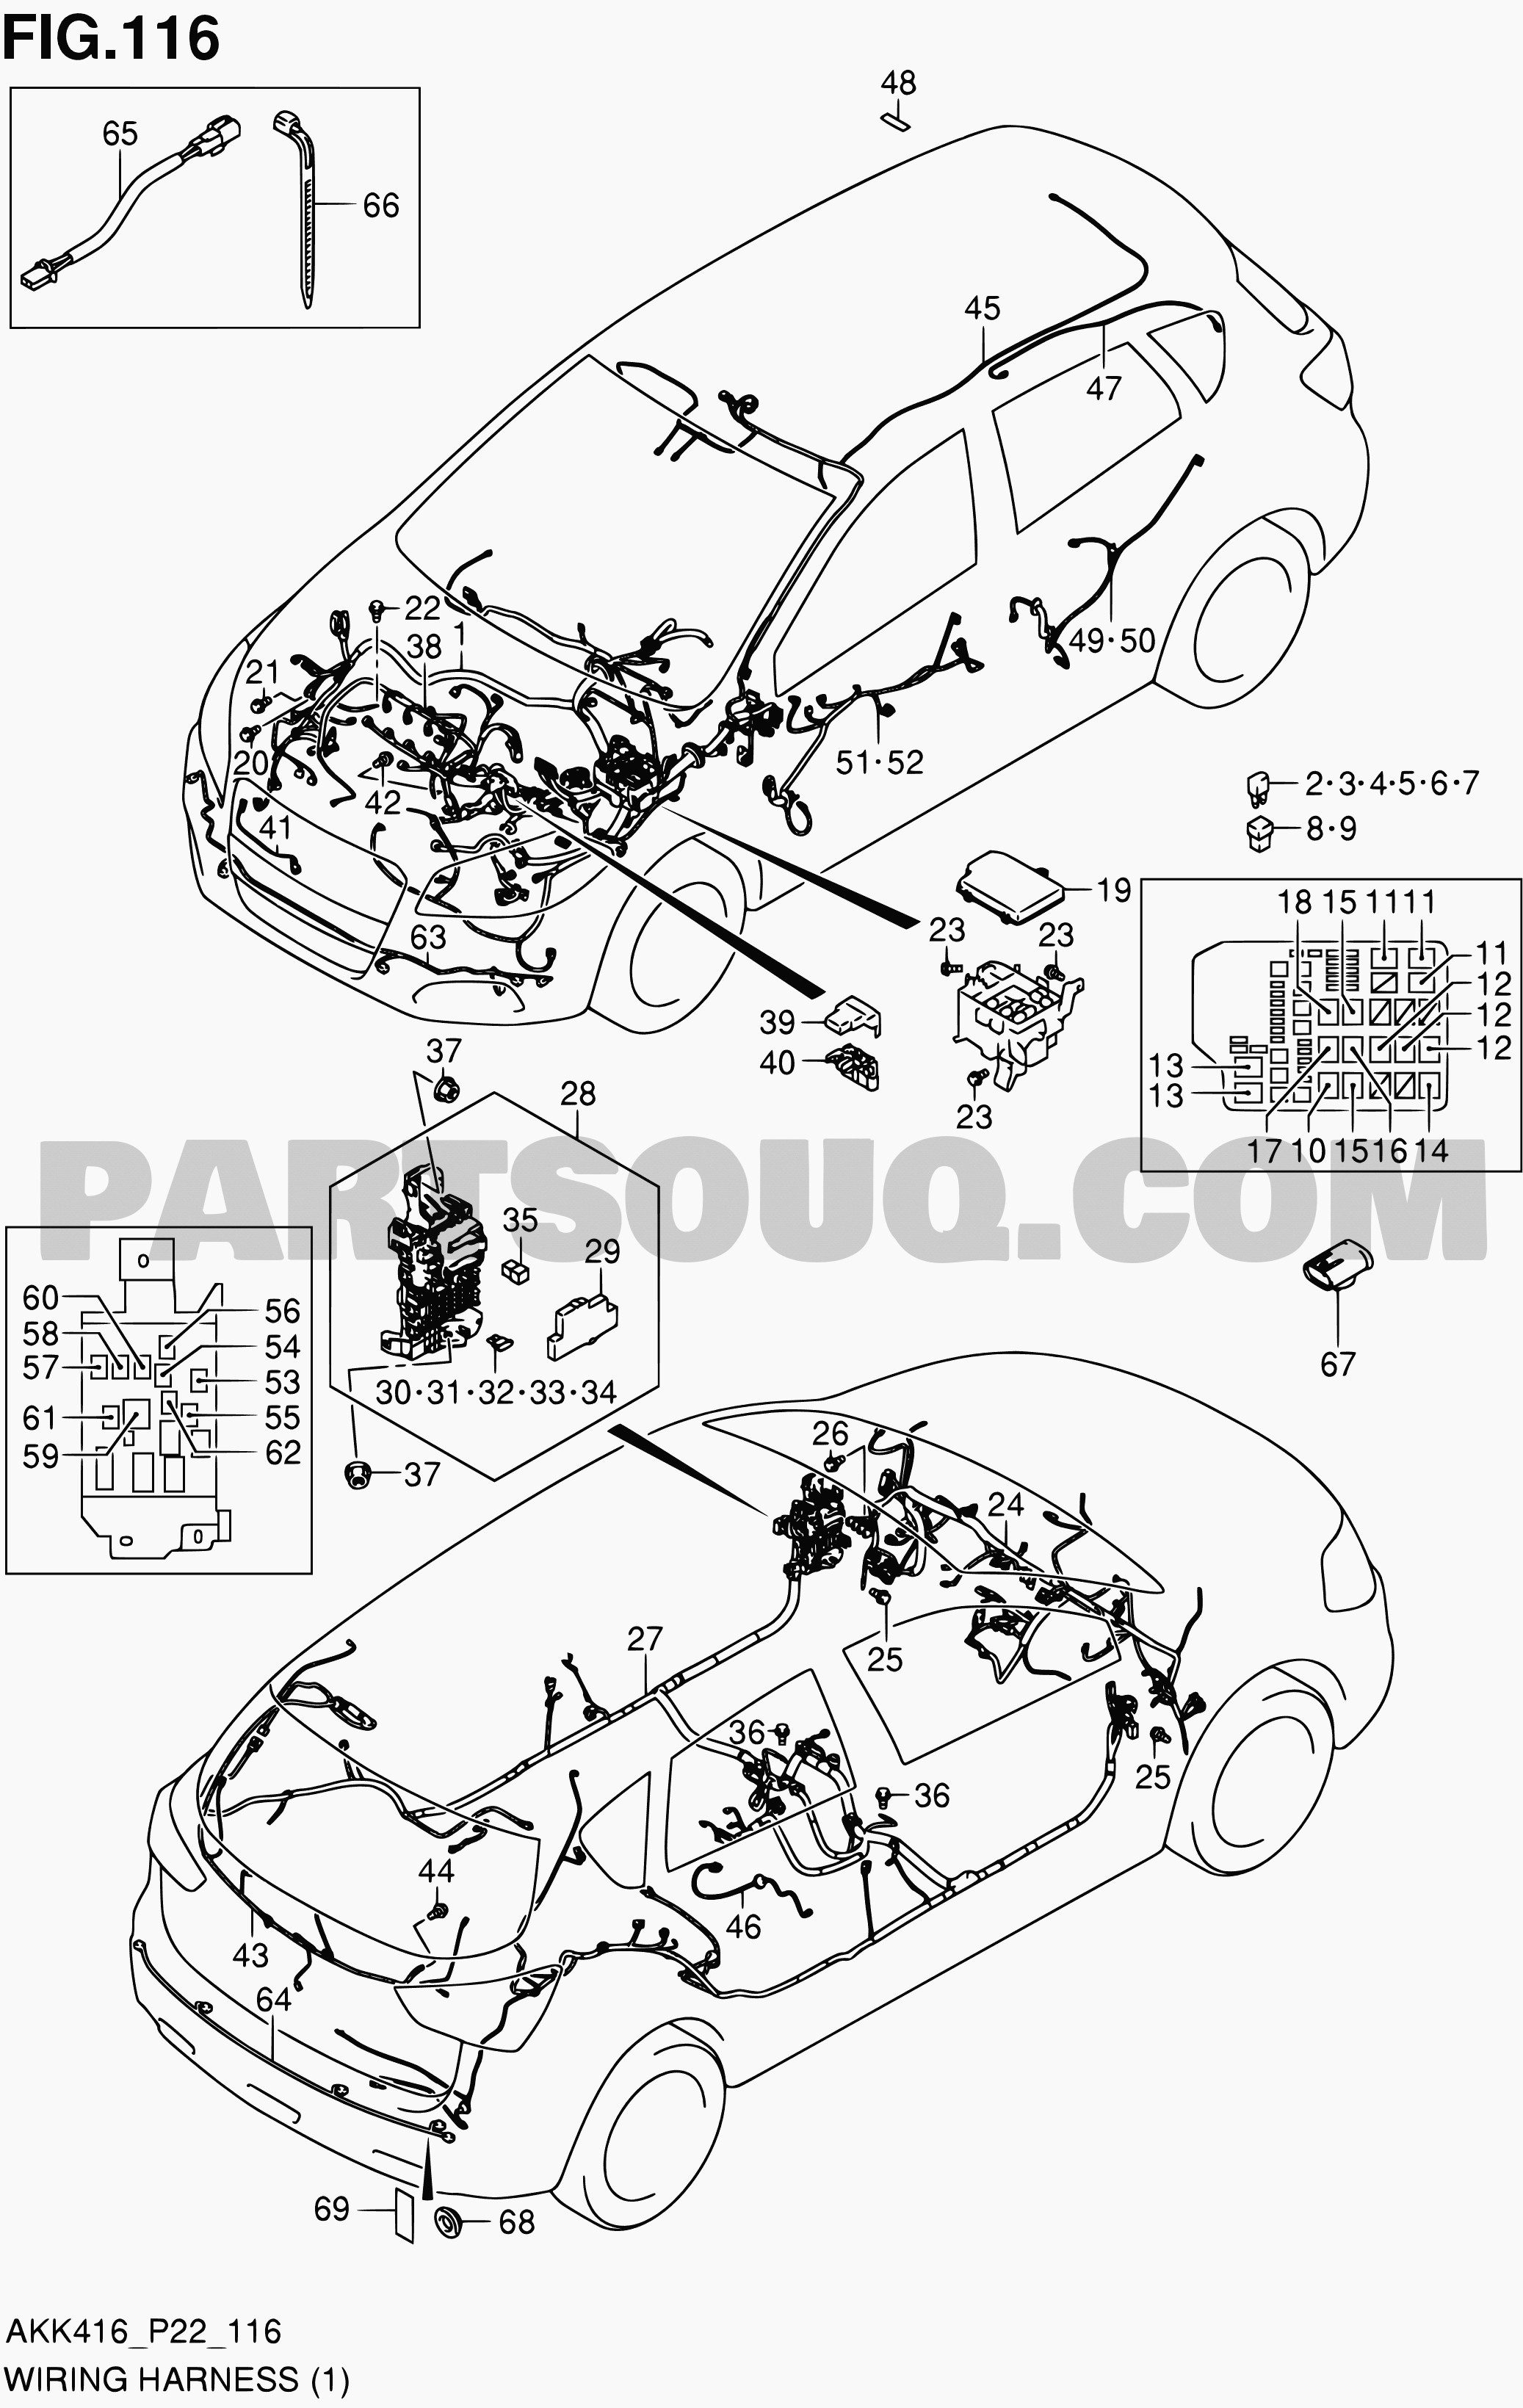 Car Undercarriage Parts Diagram Exterior 116 Wiring Harness M16a Lhd Sx4 Of